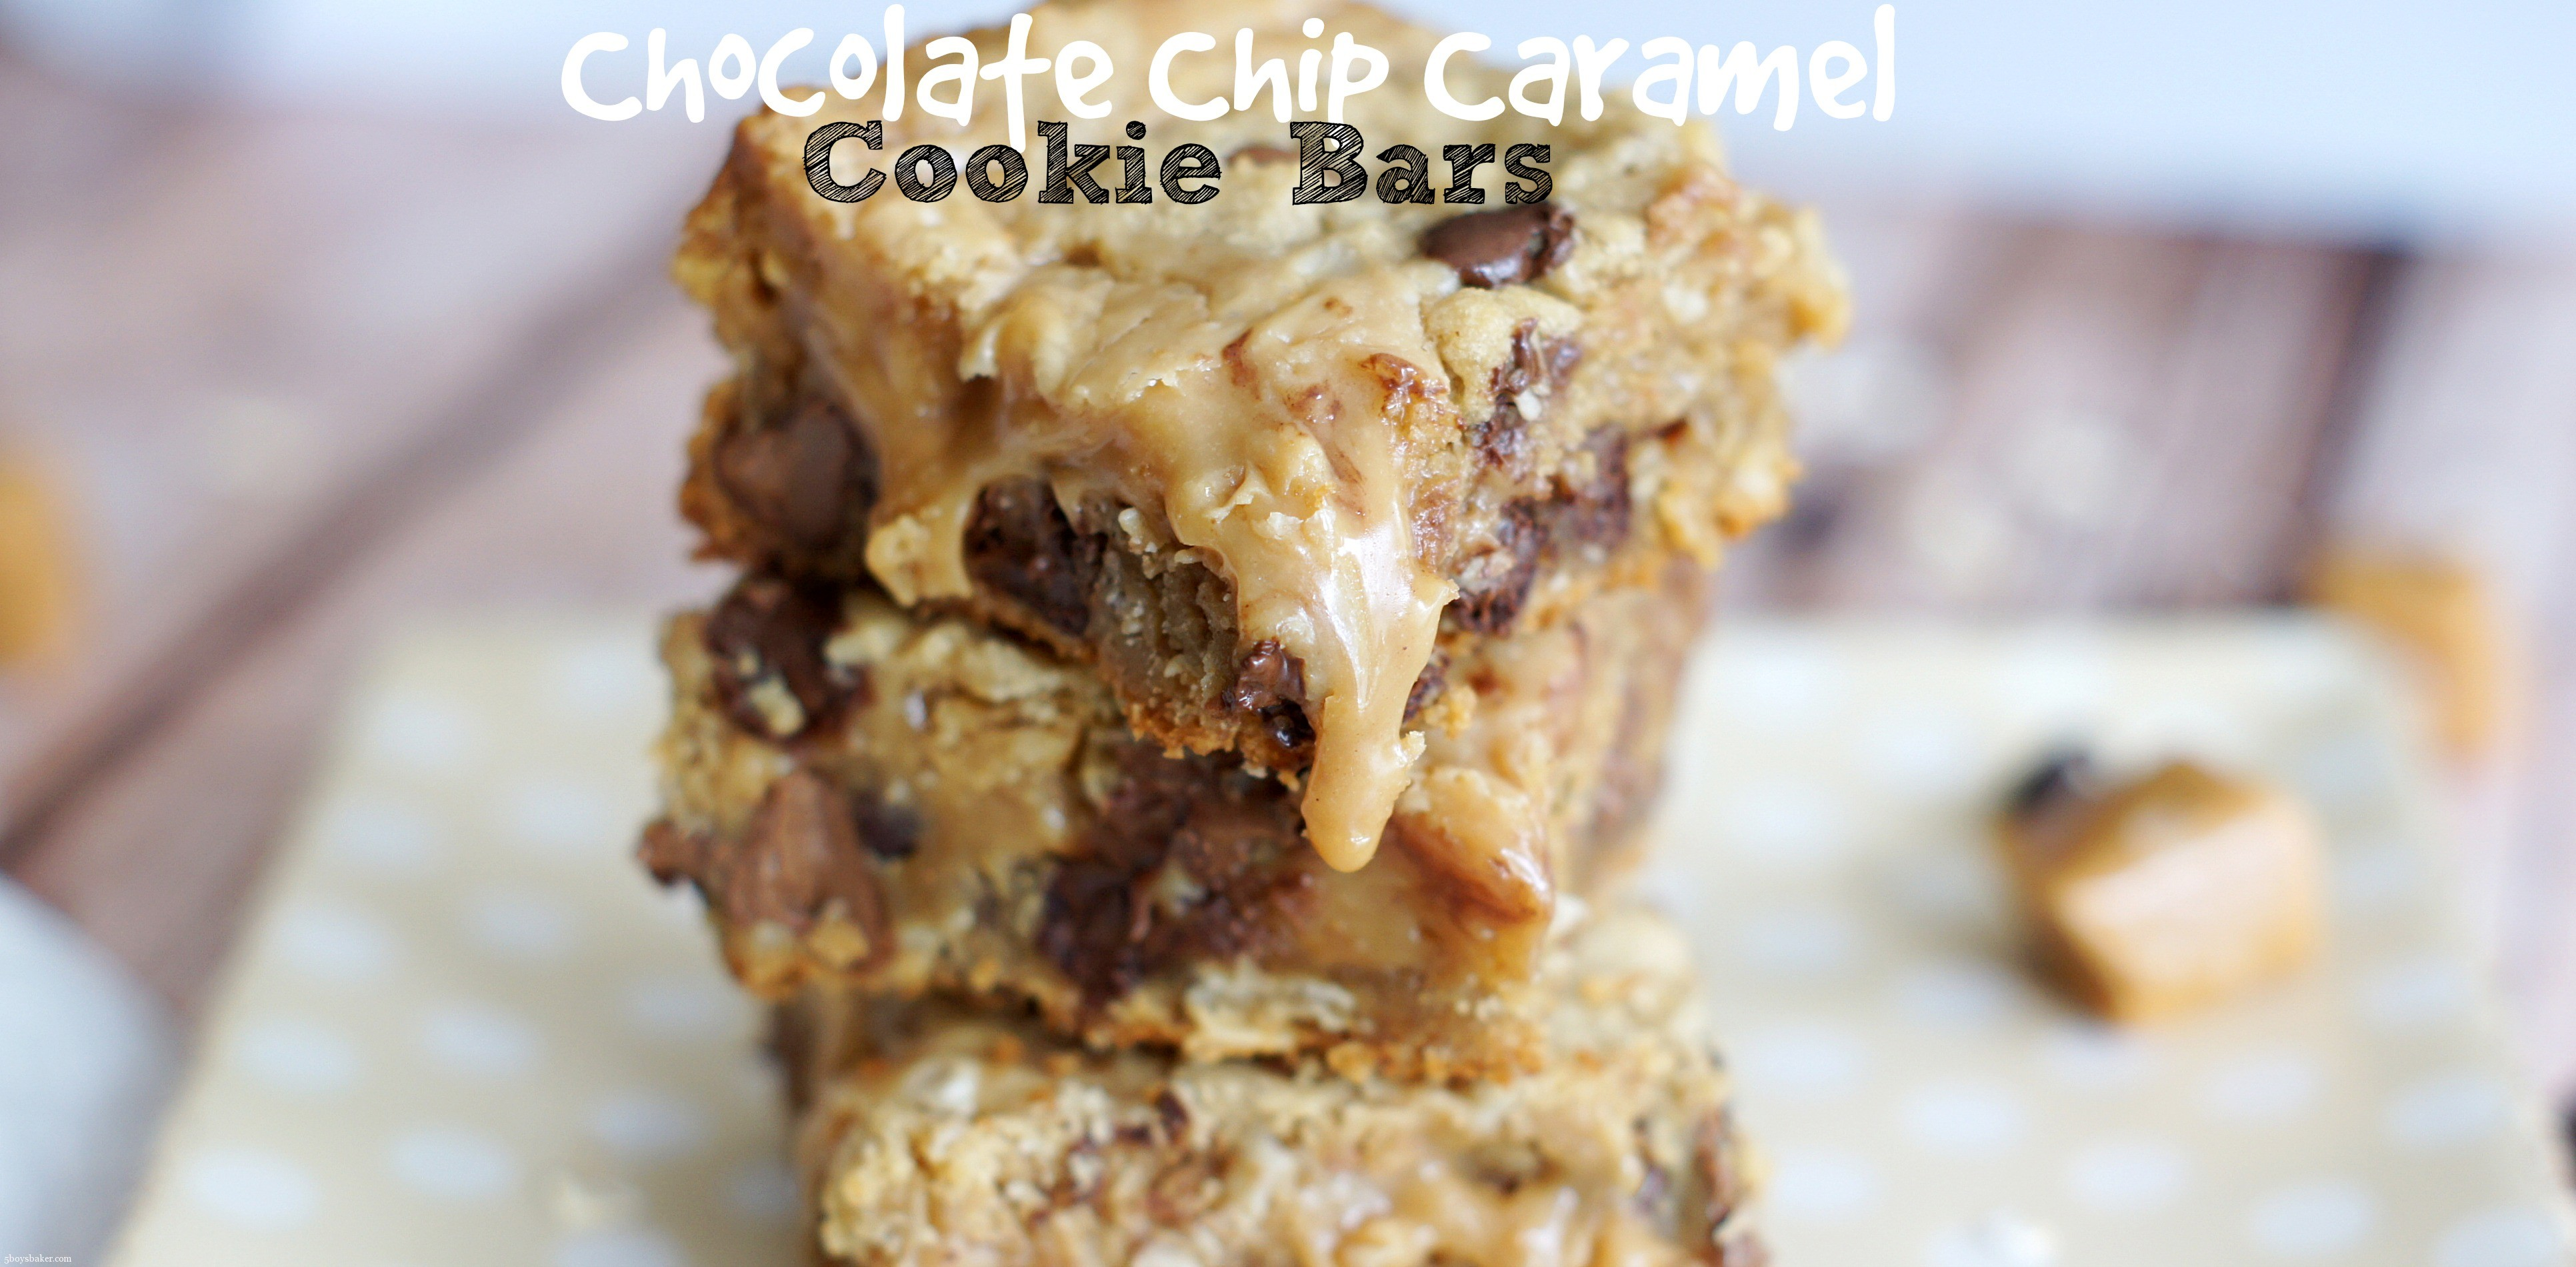 Chocolate Chip Caramel Cookie Bars - 5 Boys Baker